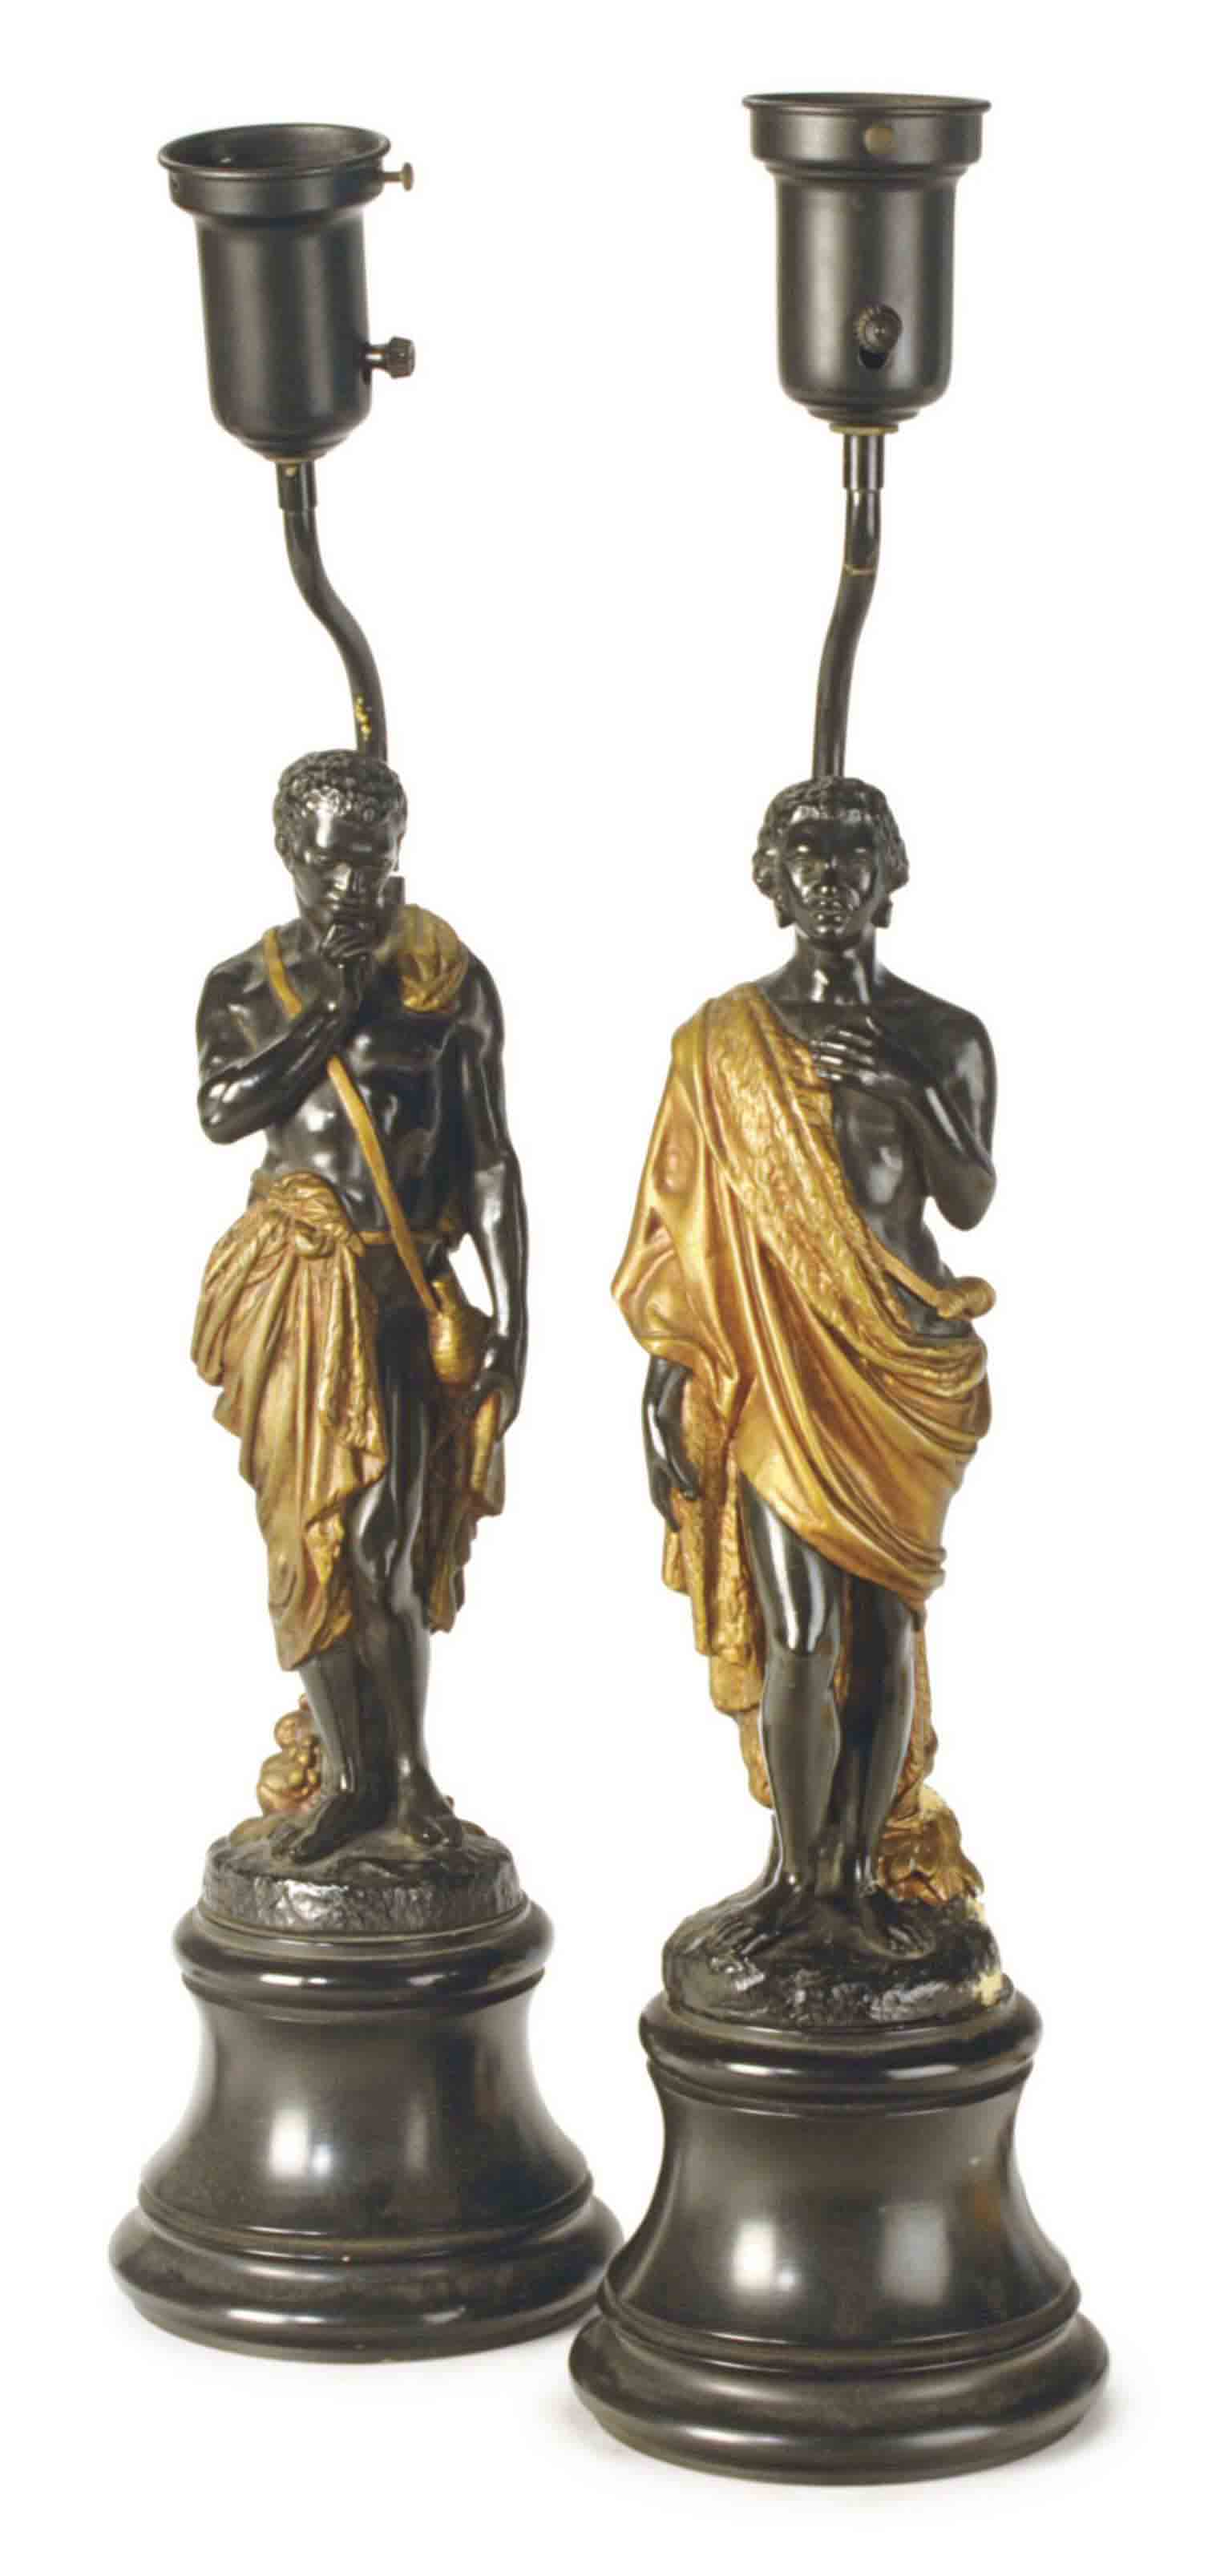 A PAIR OF EBONIZED AND PARCEL-GILT COMPOSITION BLACKAMOOR-FIGURE TABLE LAMPS,